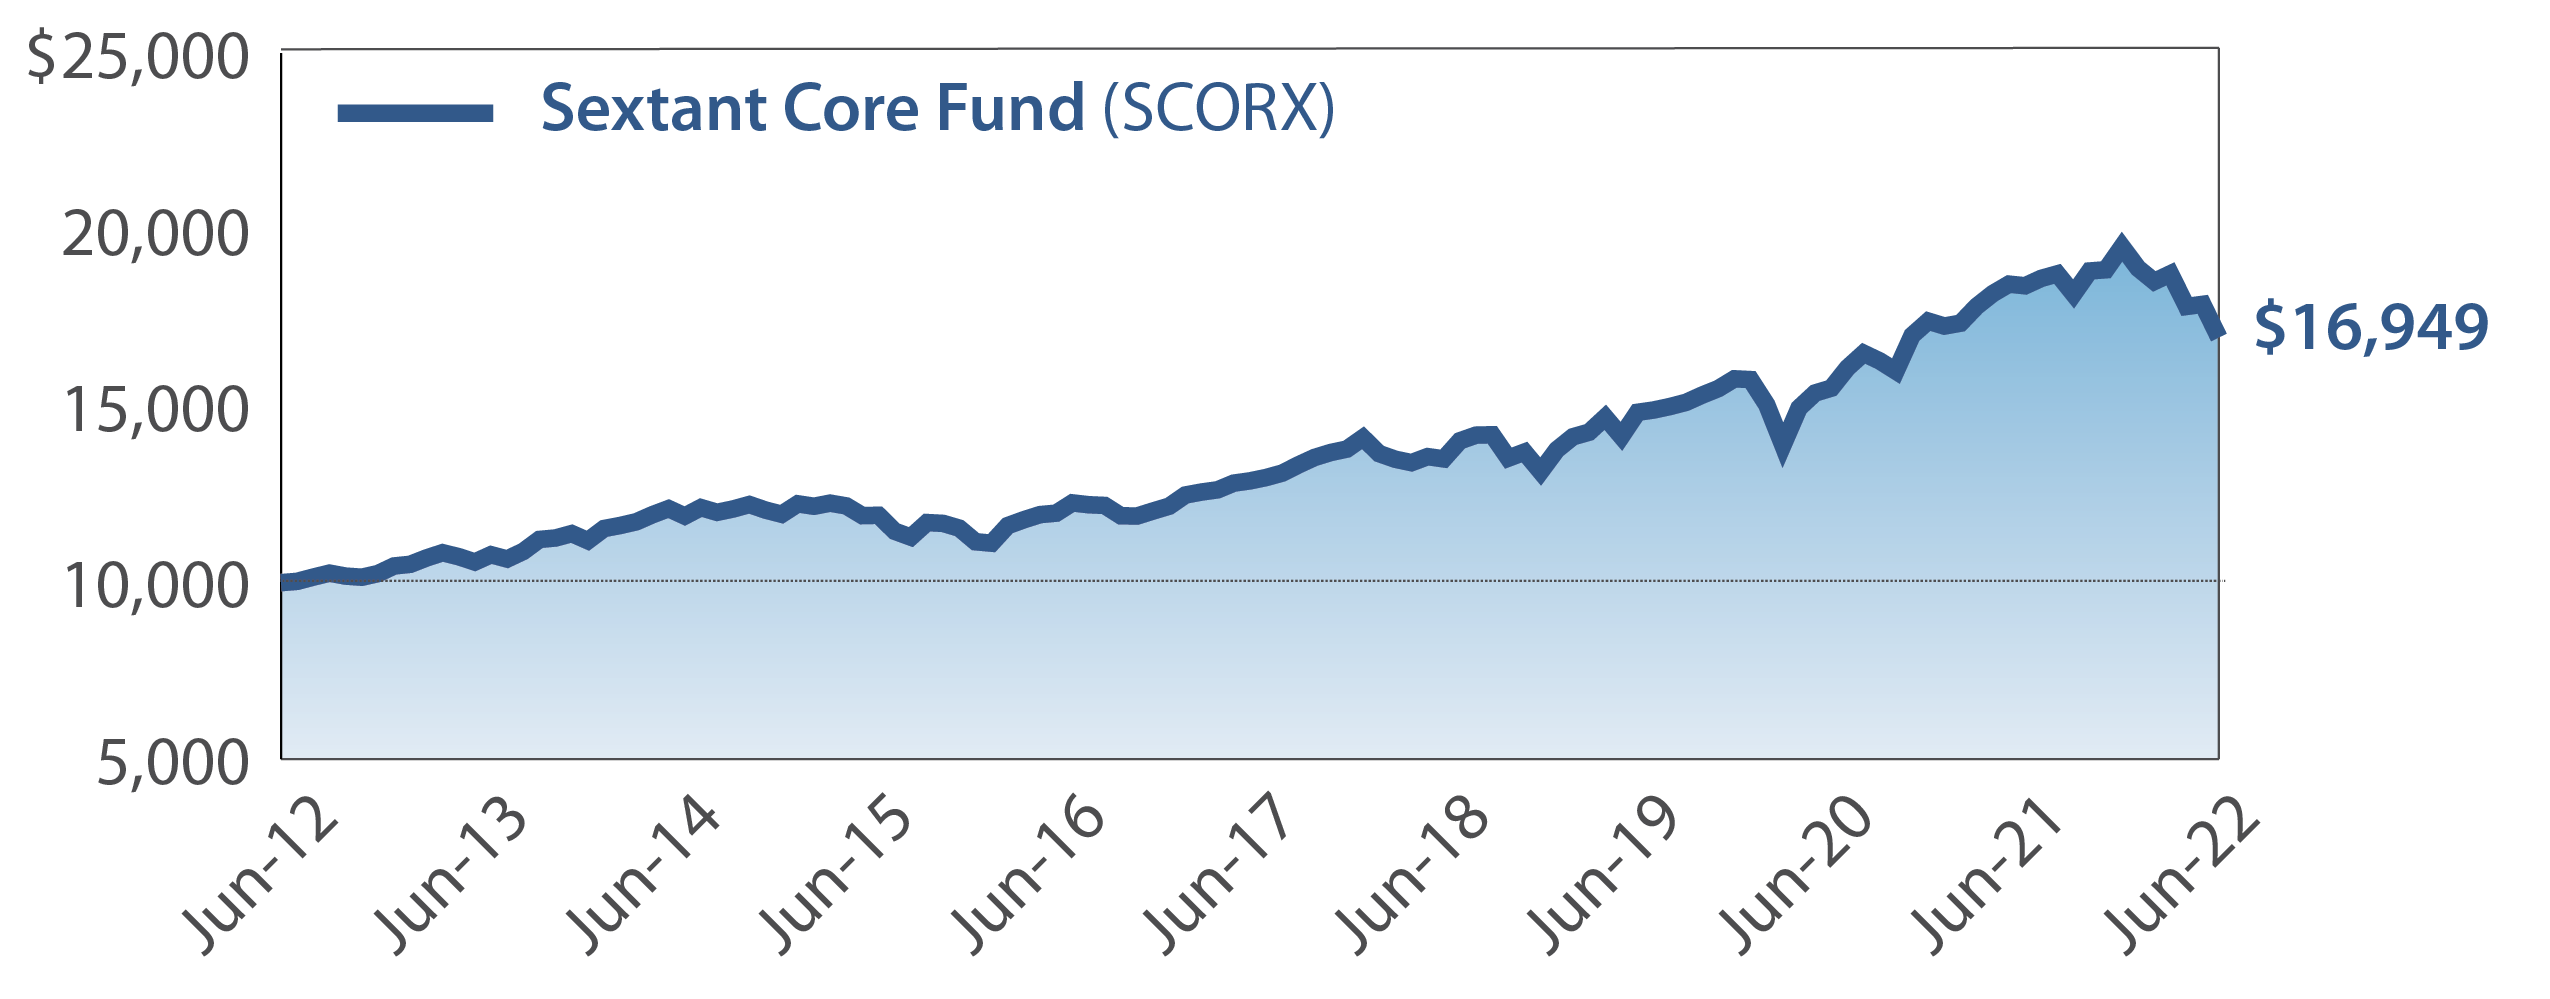 Sextant Core Fund Growth of $10,000